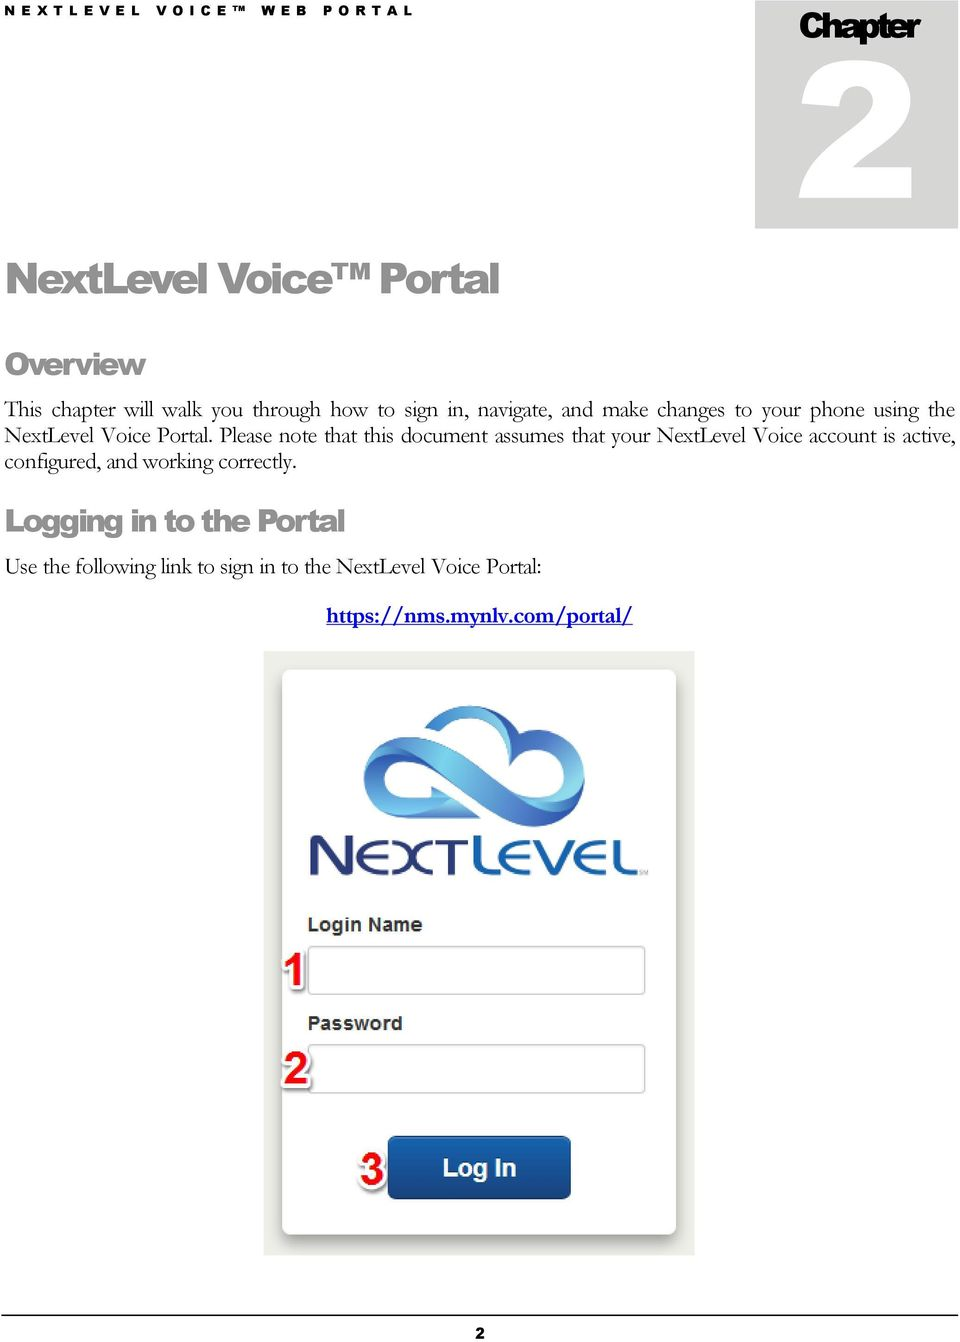 Please note that this document assumes that your NextLevel Voice account is active, configured, and